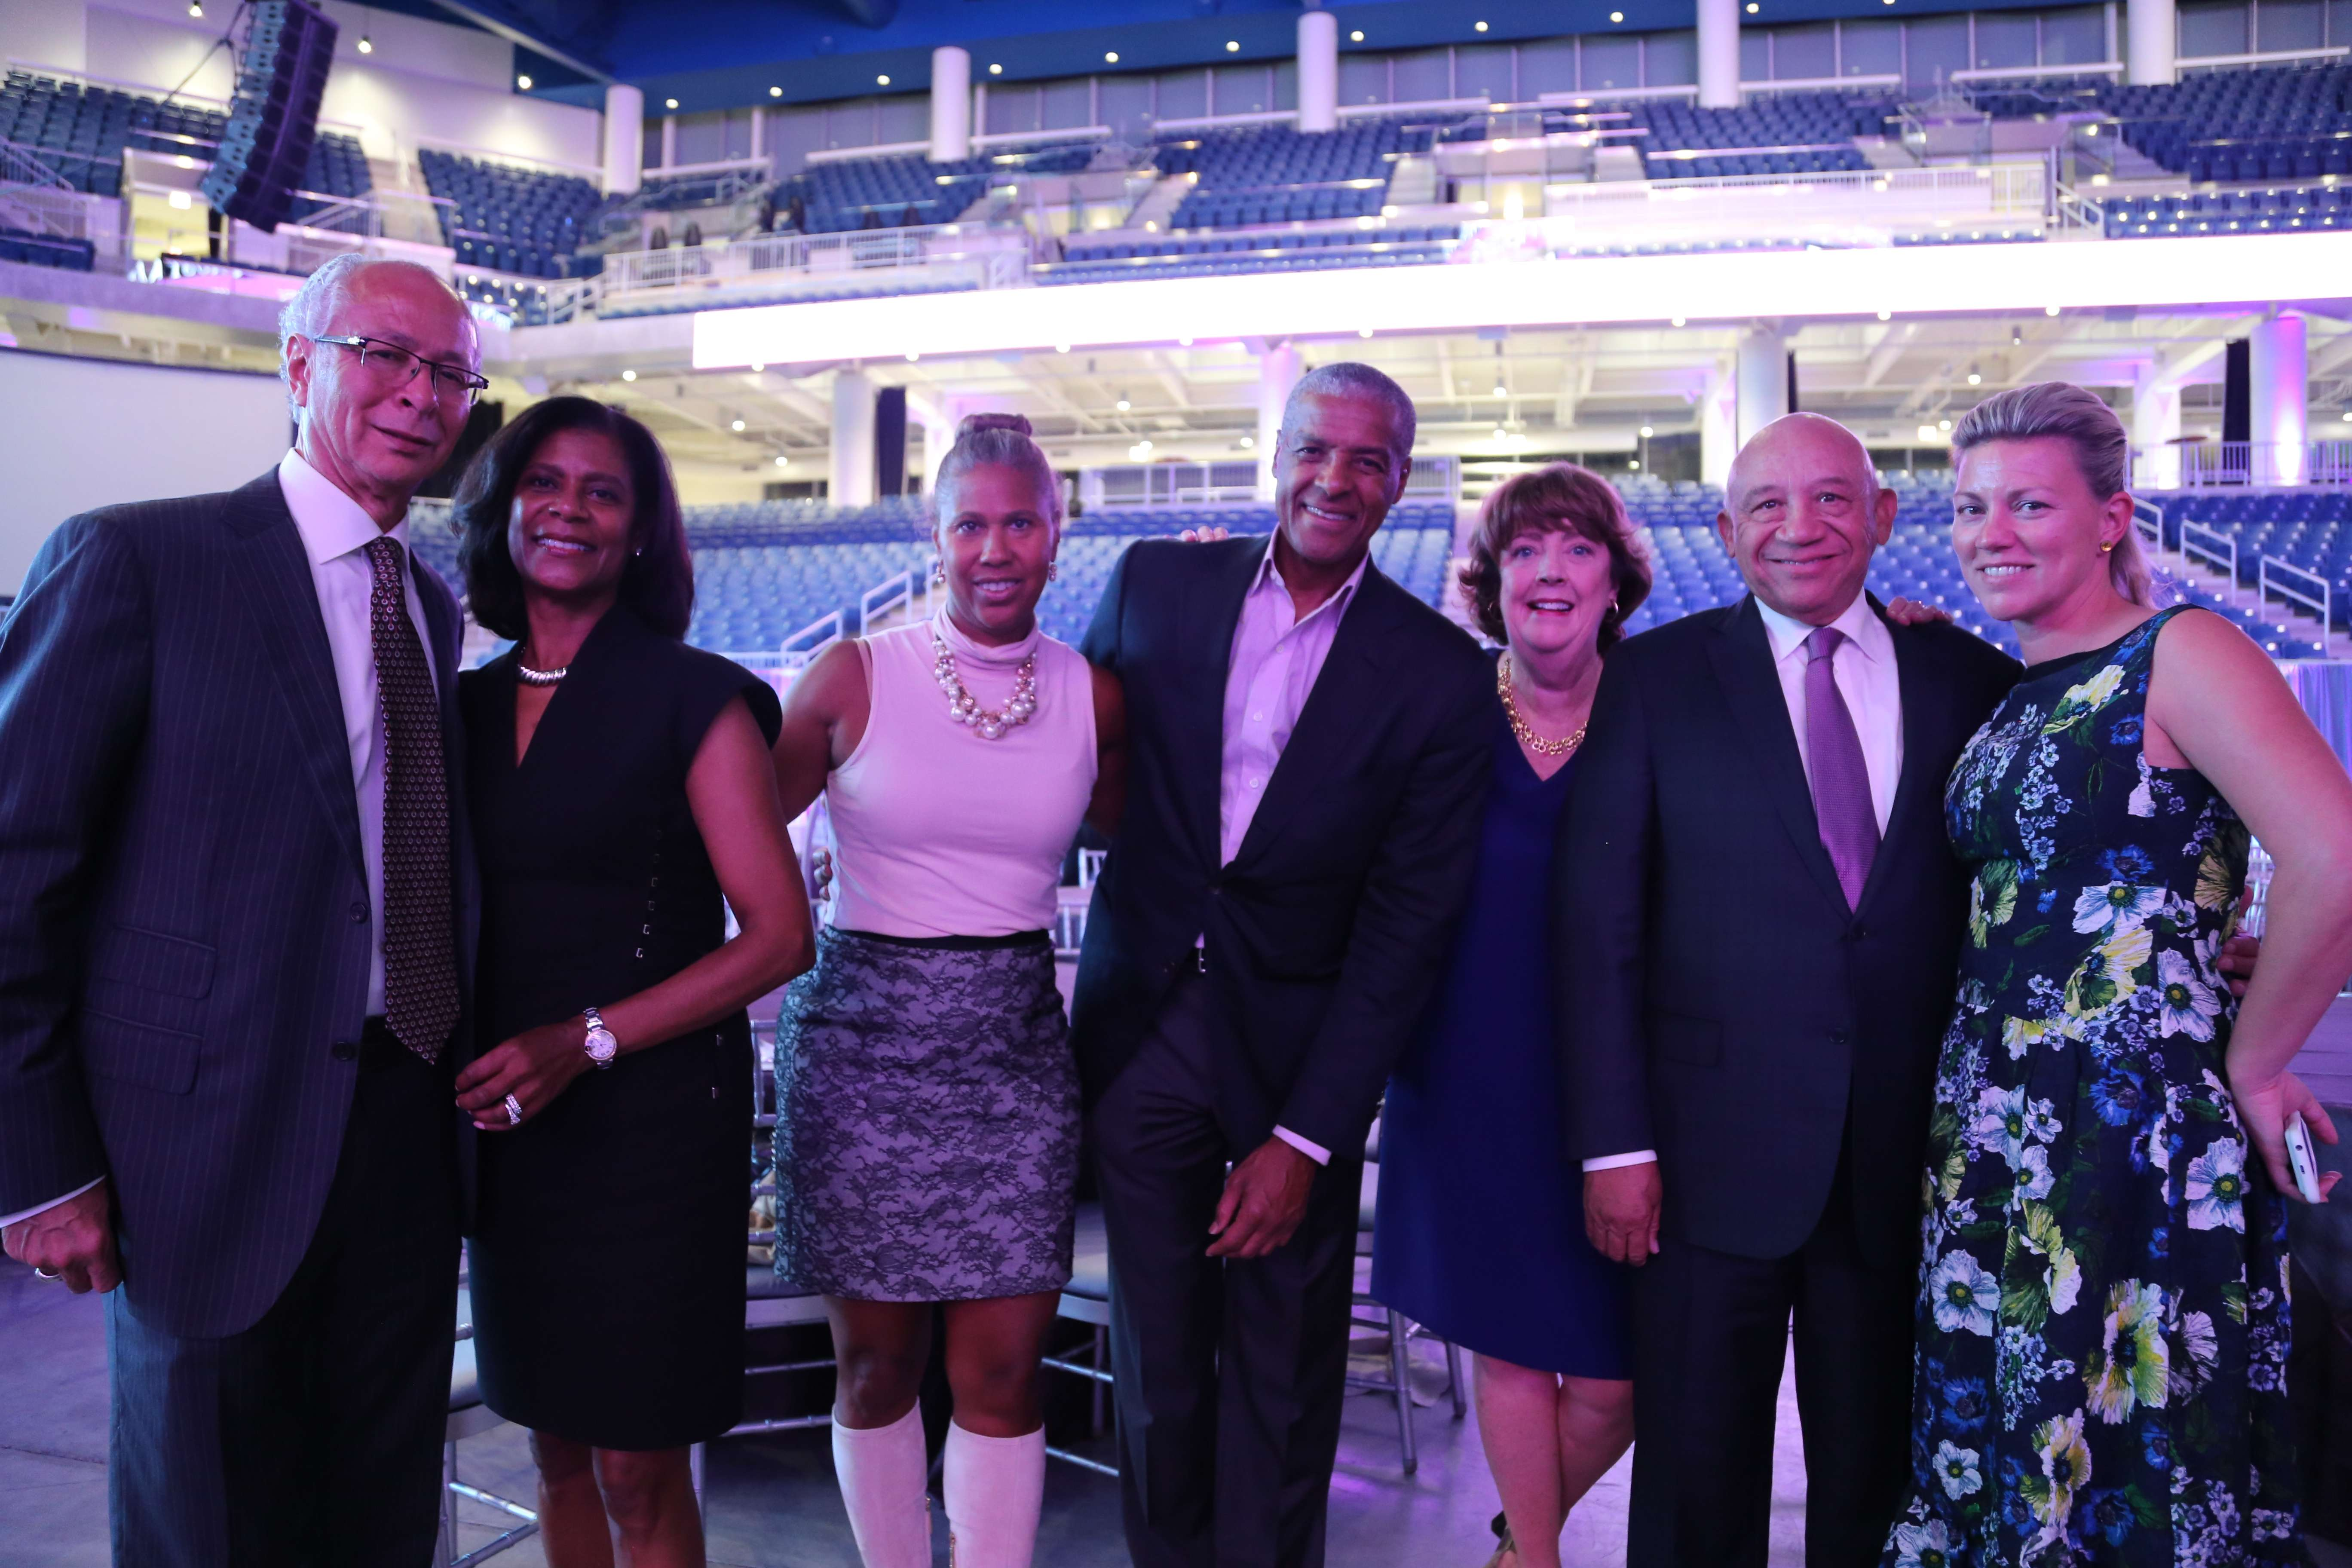 <p>Youth advocates (from left) Sam and Dona Scott, Sandy and Jim Reynolds, After School Matters CEO Mary Ellen Caron, After School Matters Board Treasurer Elzie Higginbottom and Board Secretary Nora Daley enjoyed an evening of art, exhibits and performances by Chicago's teens in the brand-new Wintrust Arena at the After School Matters Annual Gala. Photo credit: After School Matters</p>